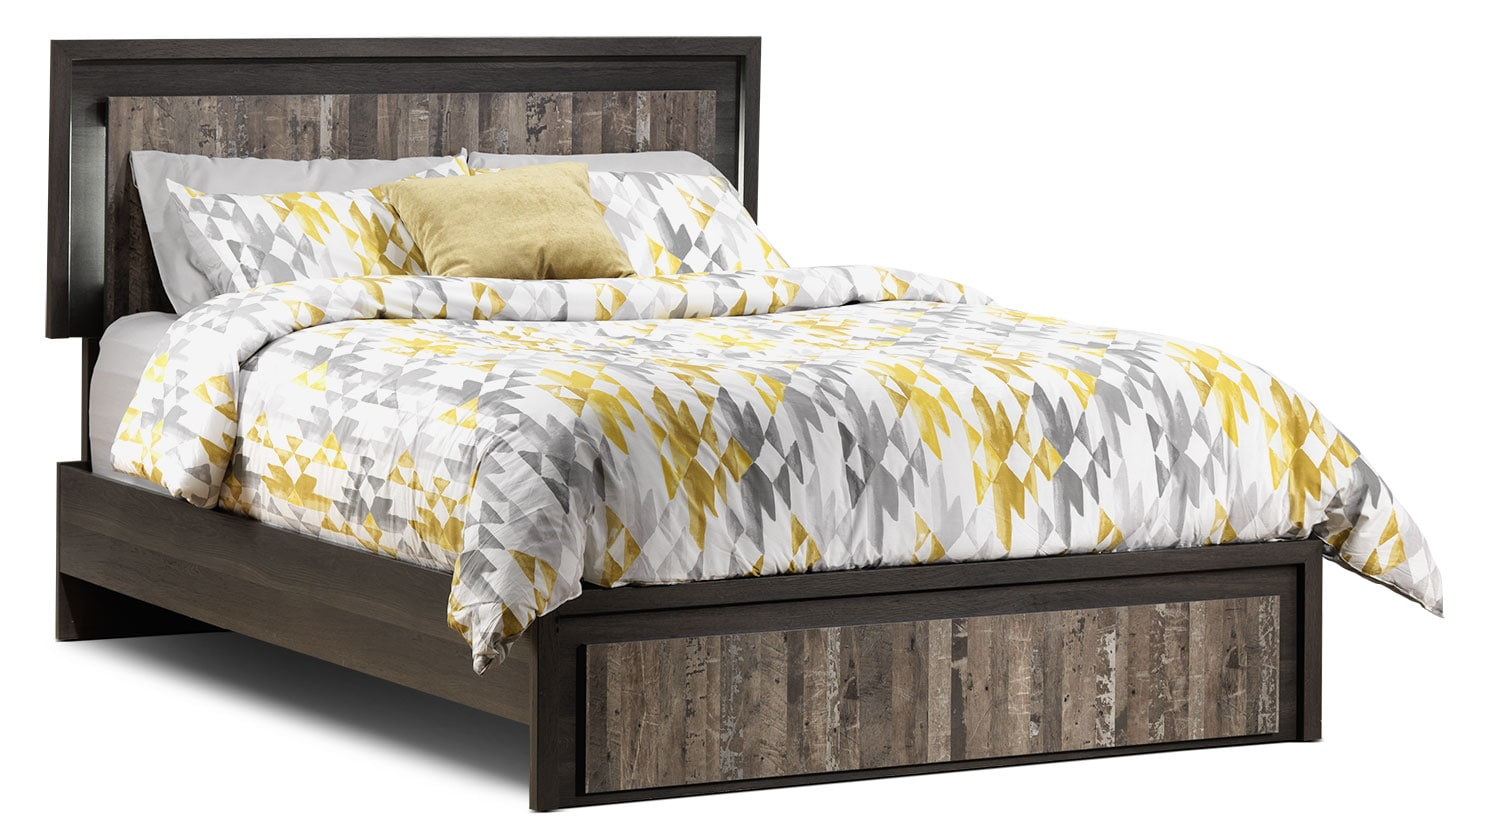 Hudson Queen Bed - Rustic Brown